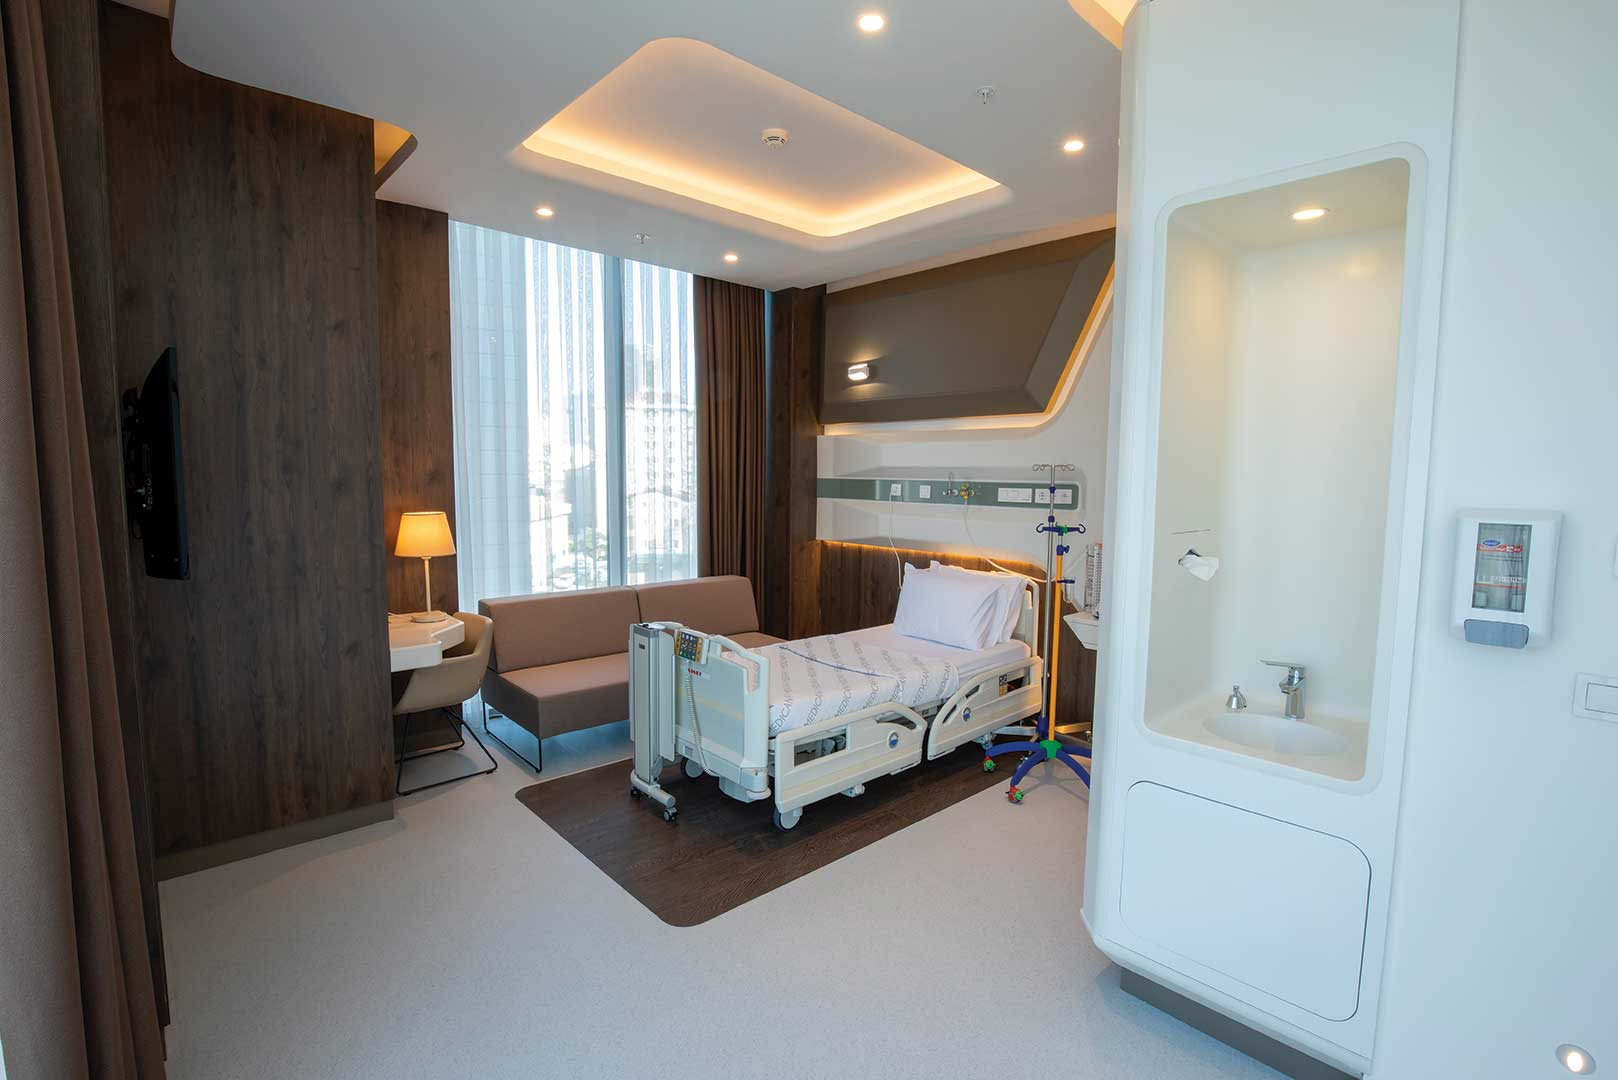 https://www.medicanahealthpoint.com/wp-content/uploads/2021/03/medicana-atasehir-hastanesi-n.jpg